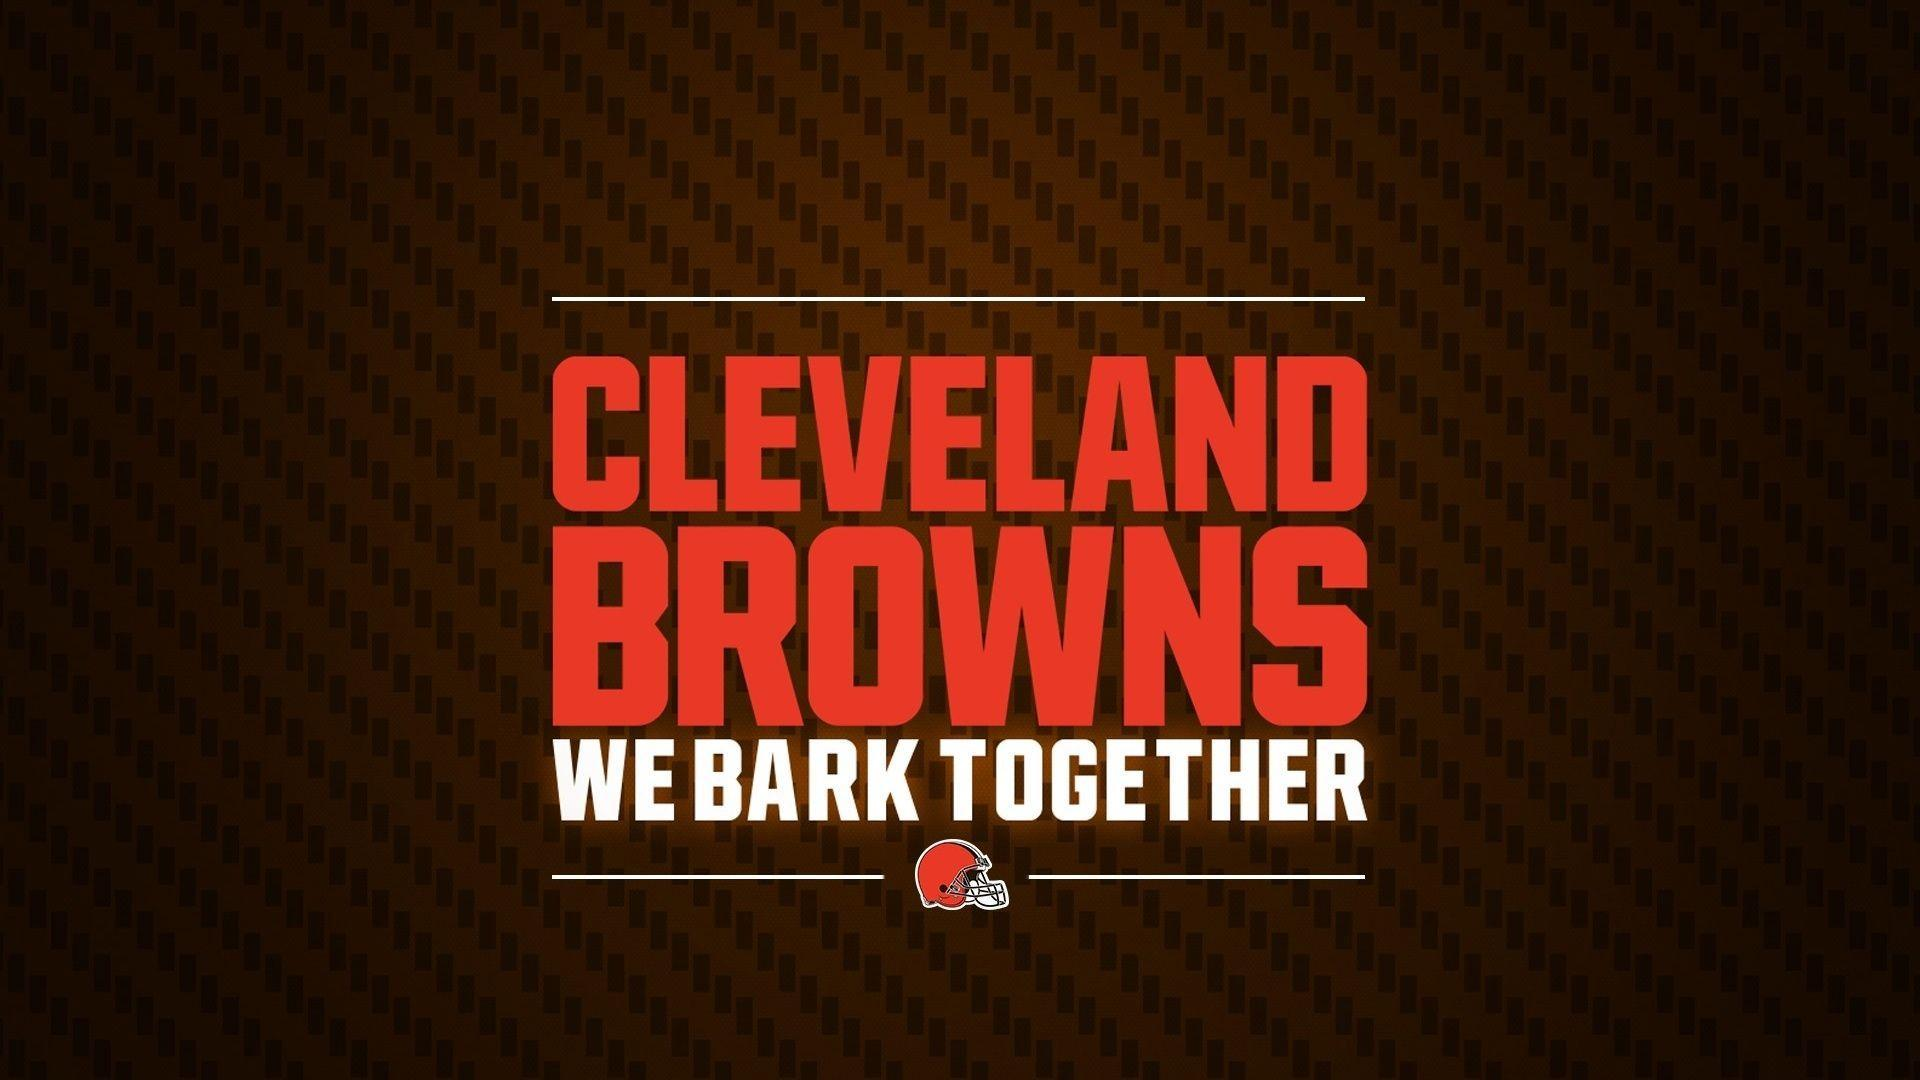 Cleveland Browns 2017 Wallpapers